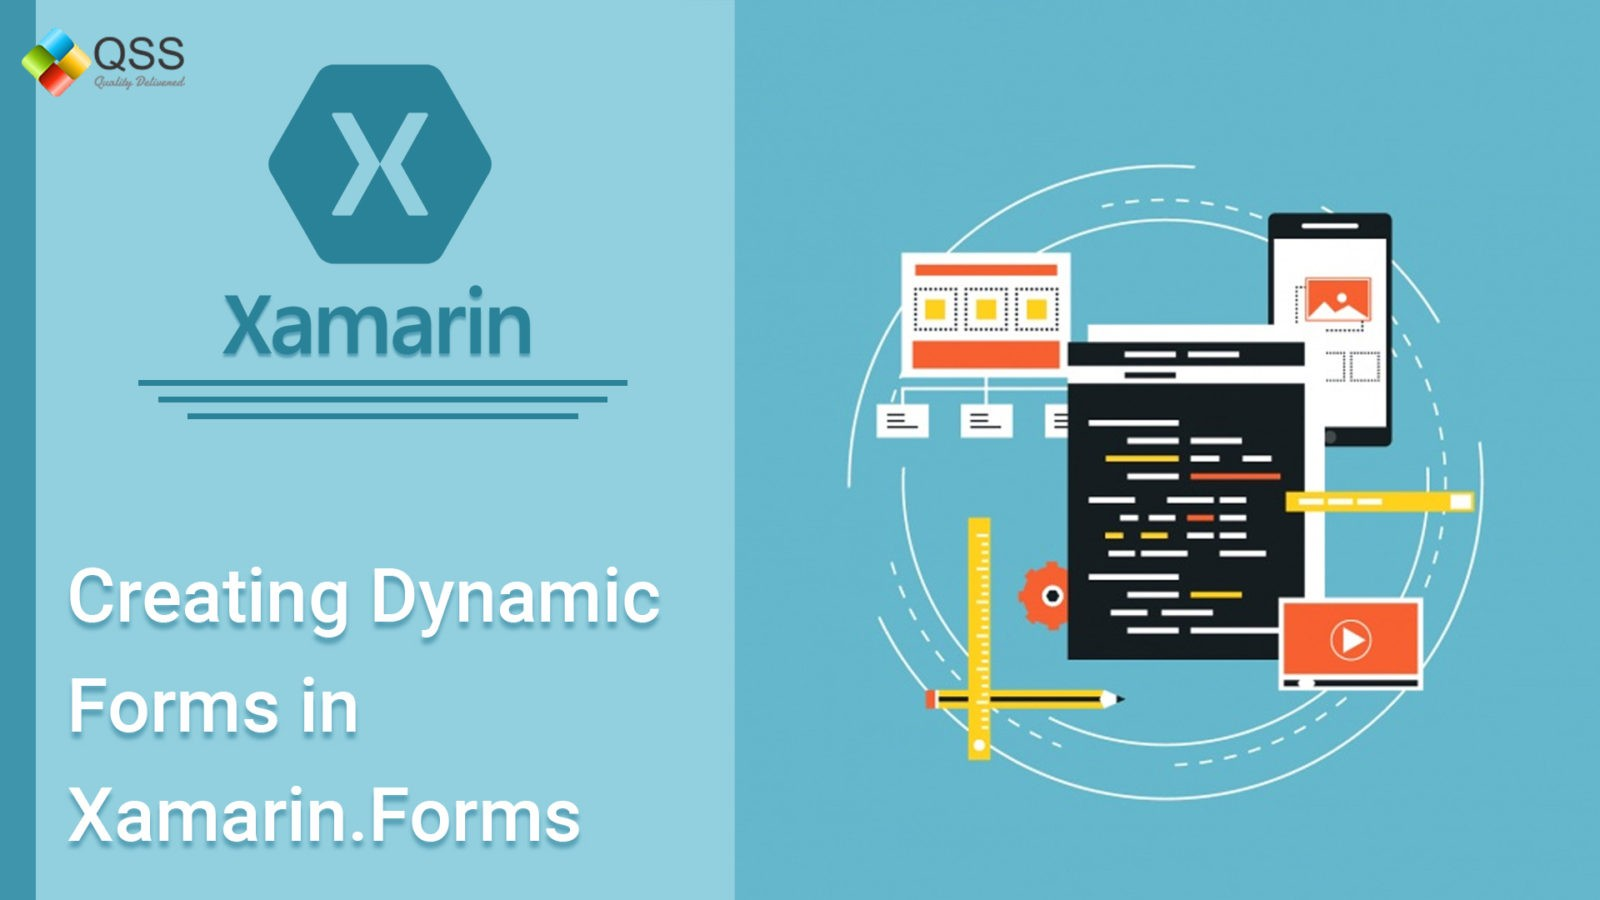 How to create Dynamic Forms in Xamarin Forms?